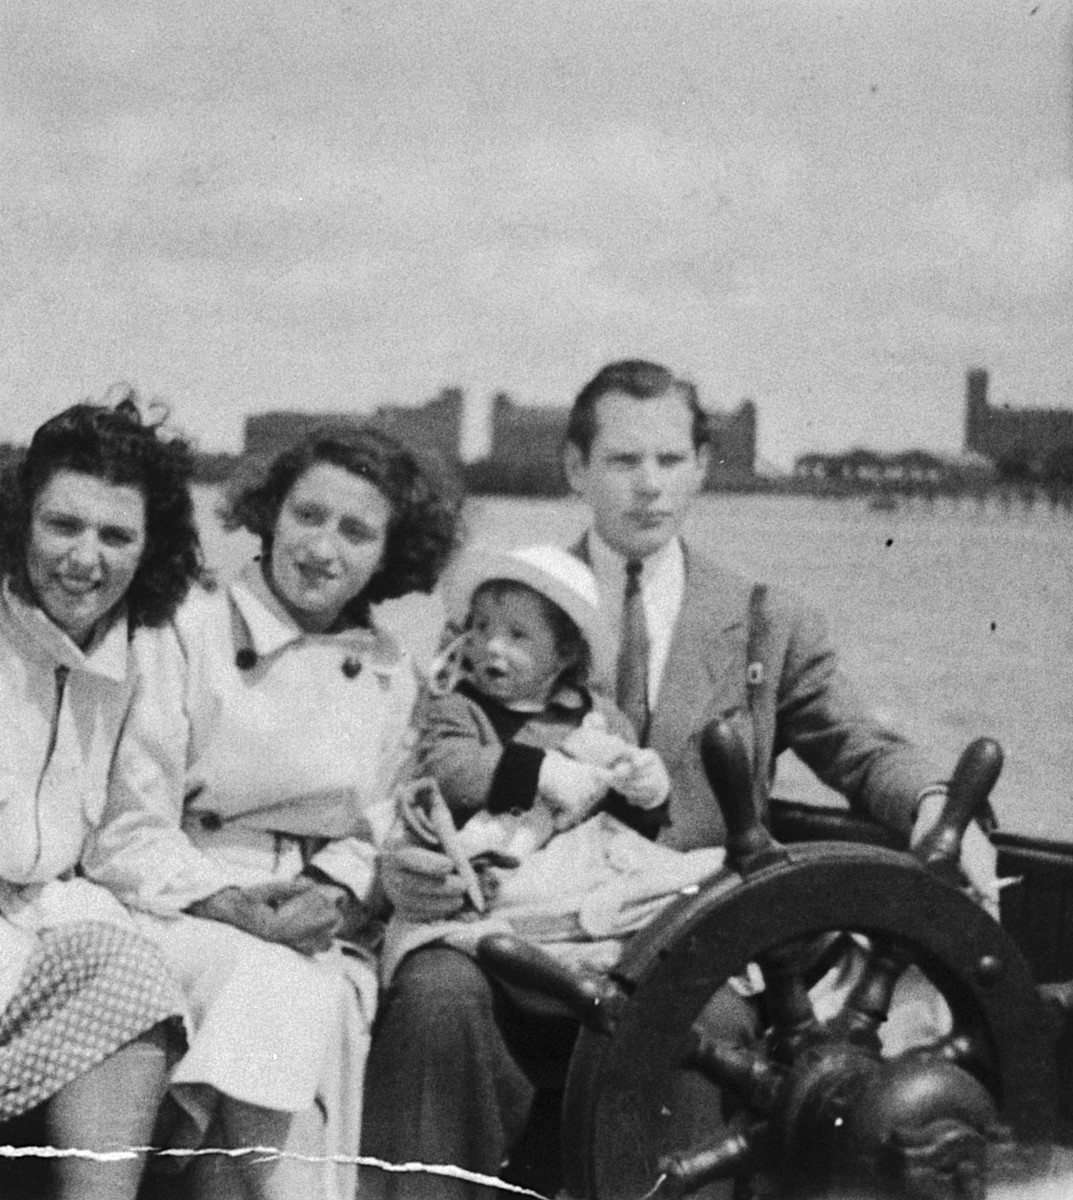 Members of the Belgian resistance take a young Jewish child they are hiding for a boat ride.  Pictured are Andree Ermel, Floris Desmedt, and Myriam Frydland.